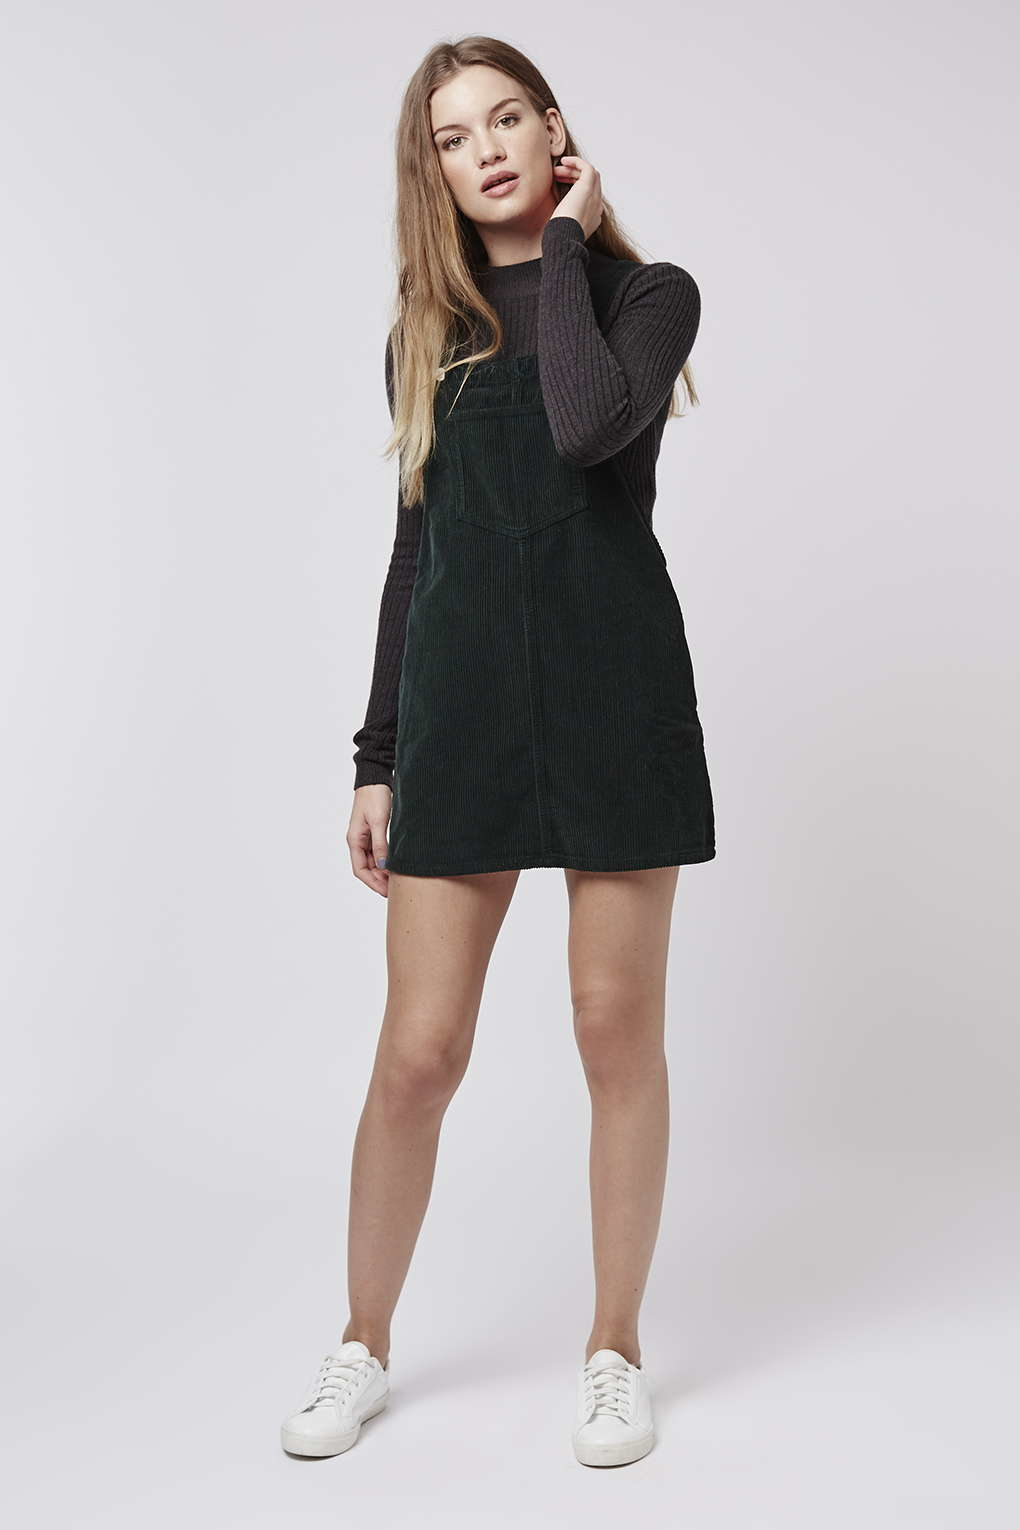 check out nice cheap 2019 professional TOPSHOP Petite Moto Cord Pinafore Dress in Emerald (Green ...